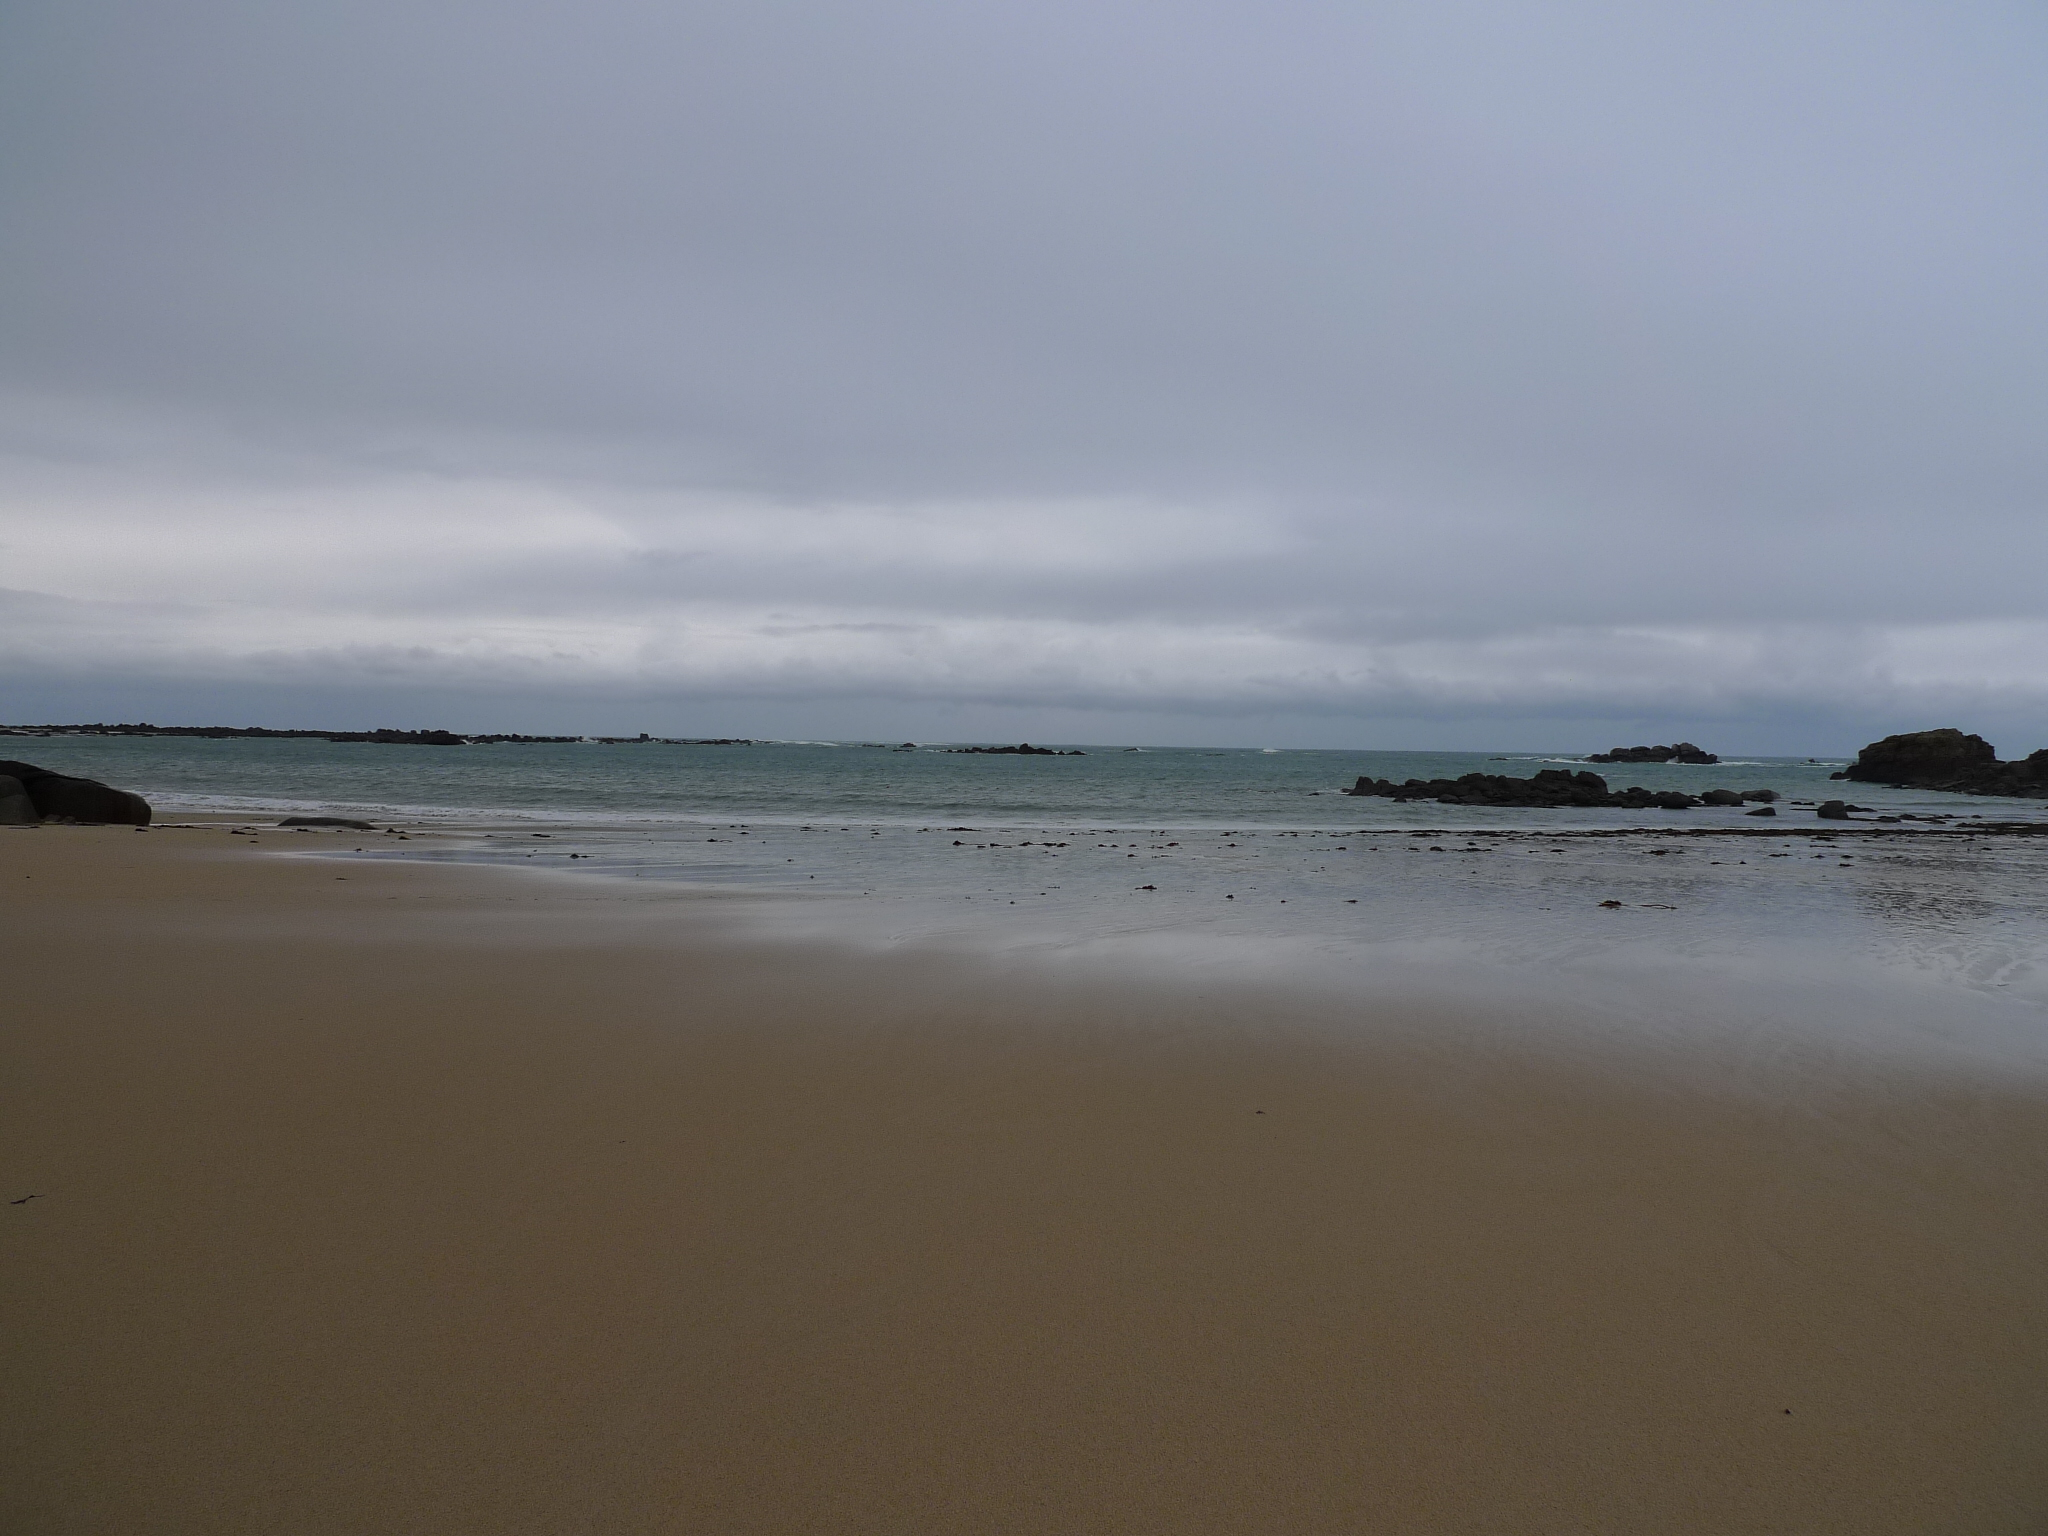 Breton Beach on New Year's Eve